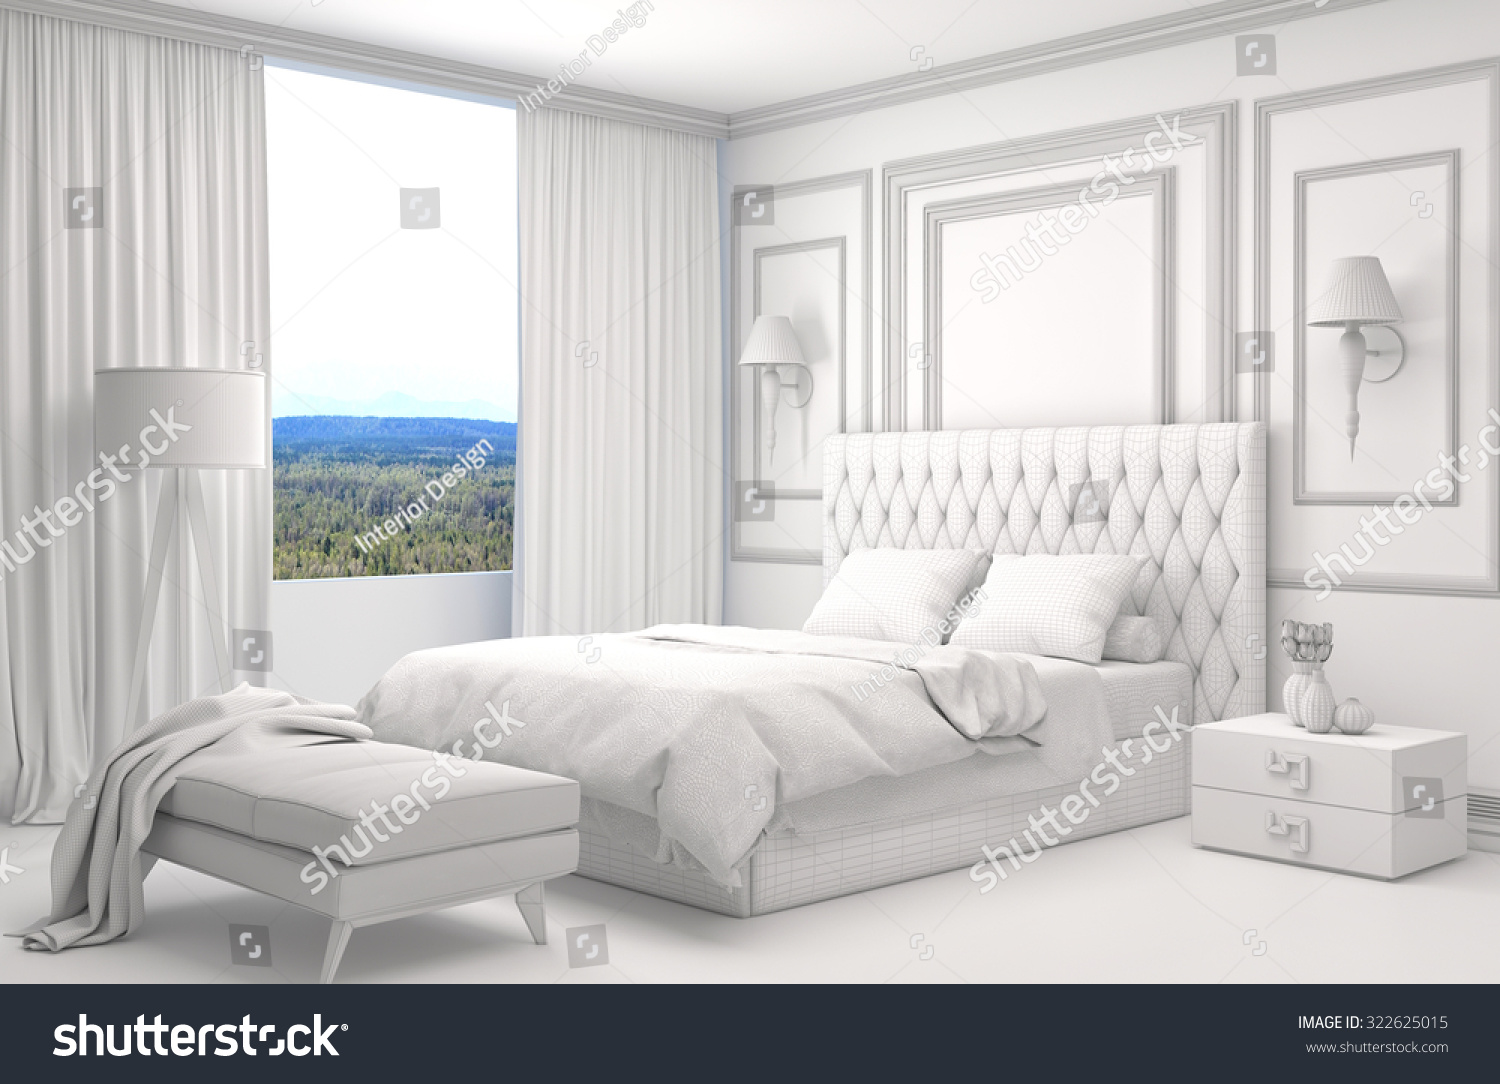 Side View Of An Interior Of A Bedroom With Gray And Light Wooden Wall  Element, A Double Bed And Two Bedside Tables. 3d Rendering. | EZ Canvas